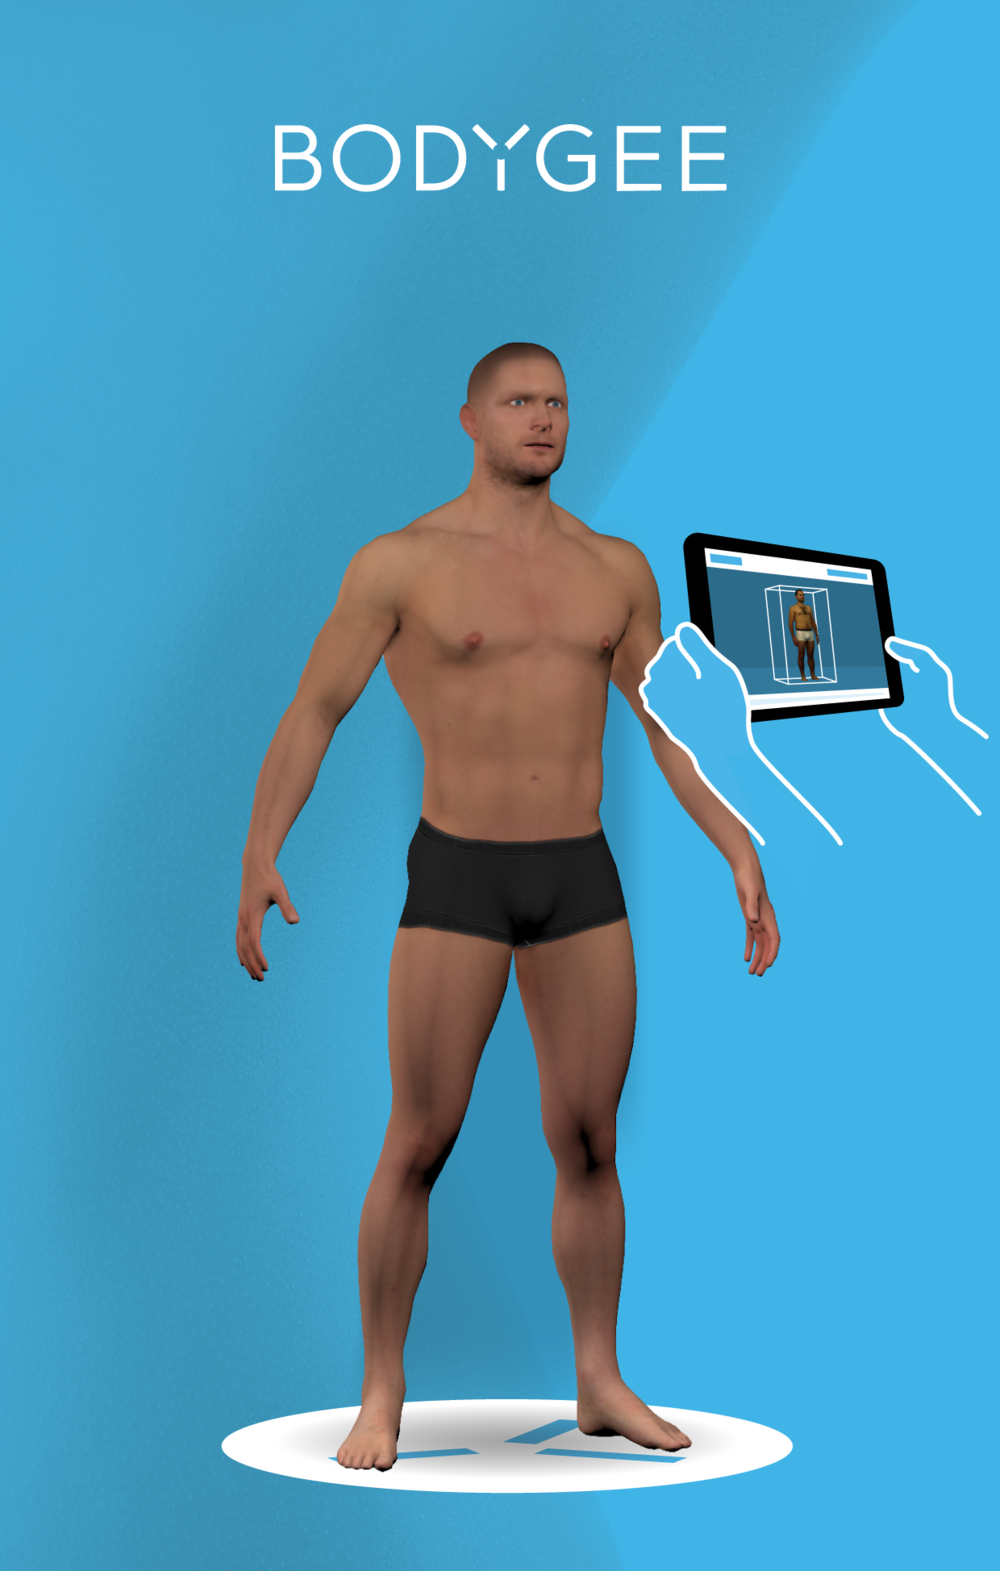 Bodygee-Funktionsgrafik-Body01-iOS-1.png